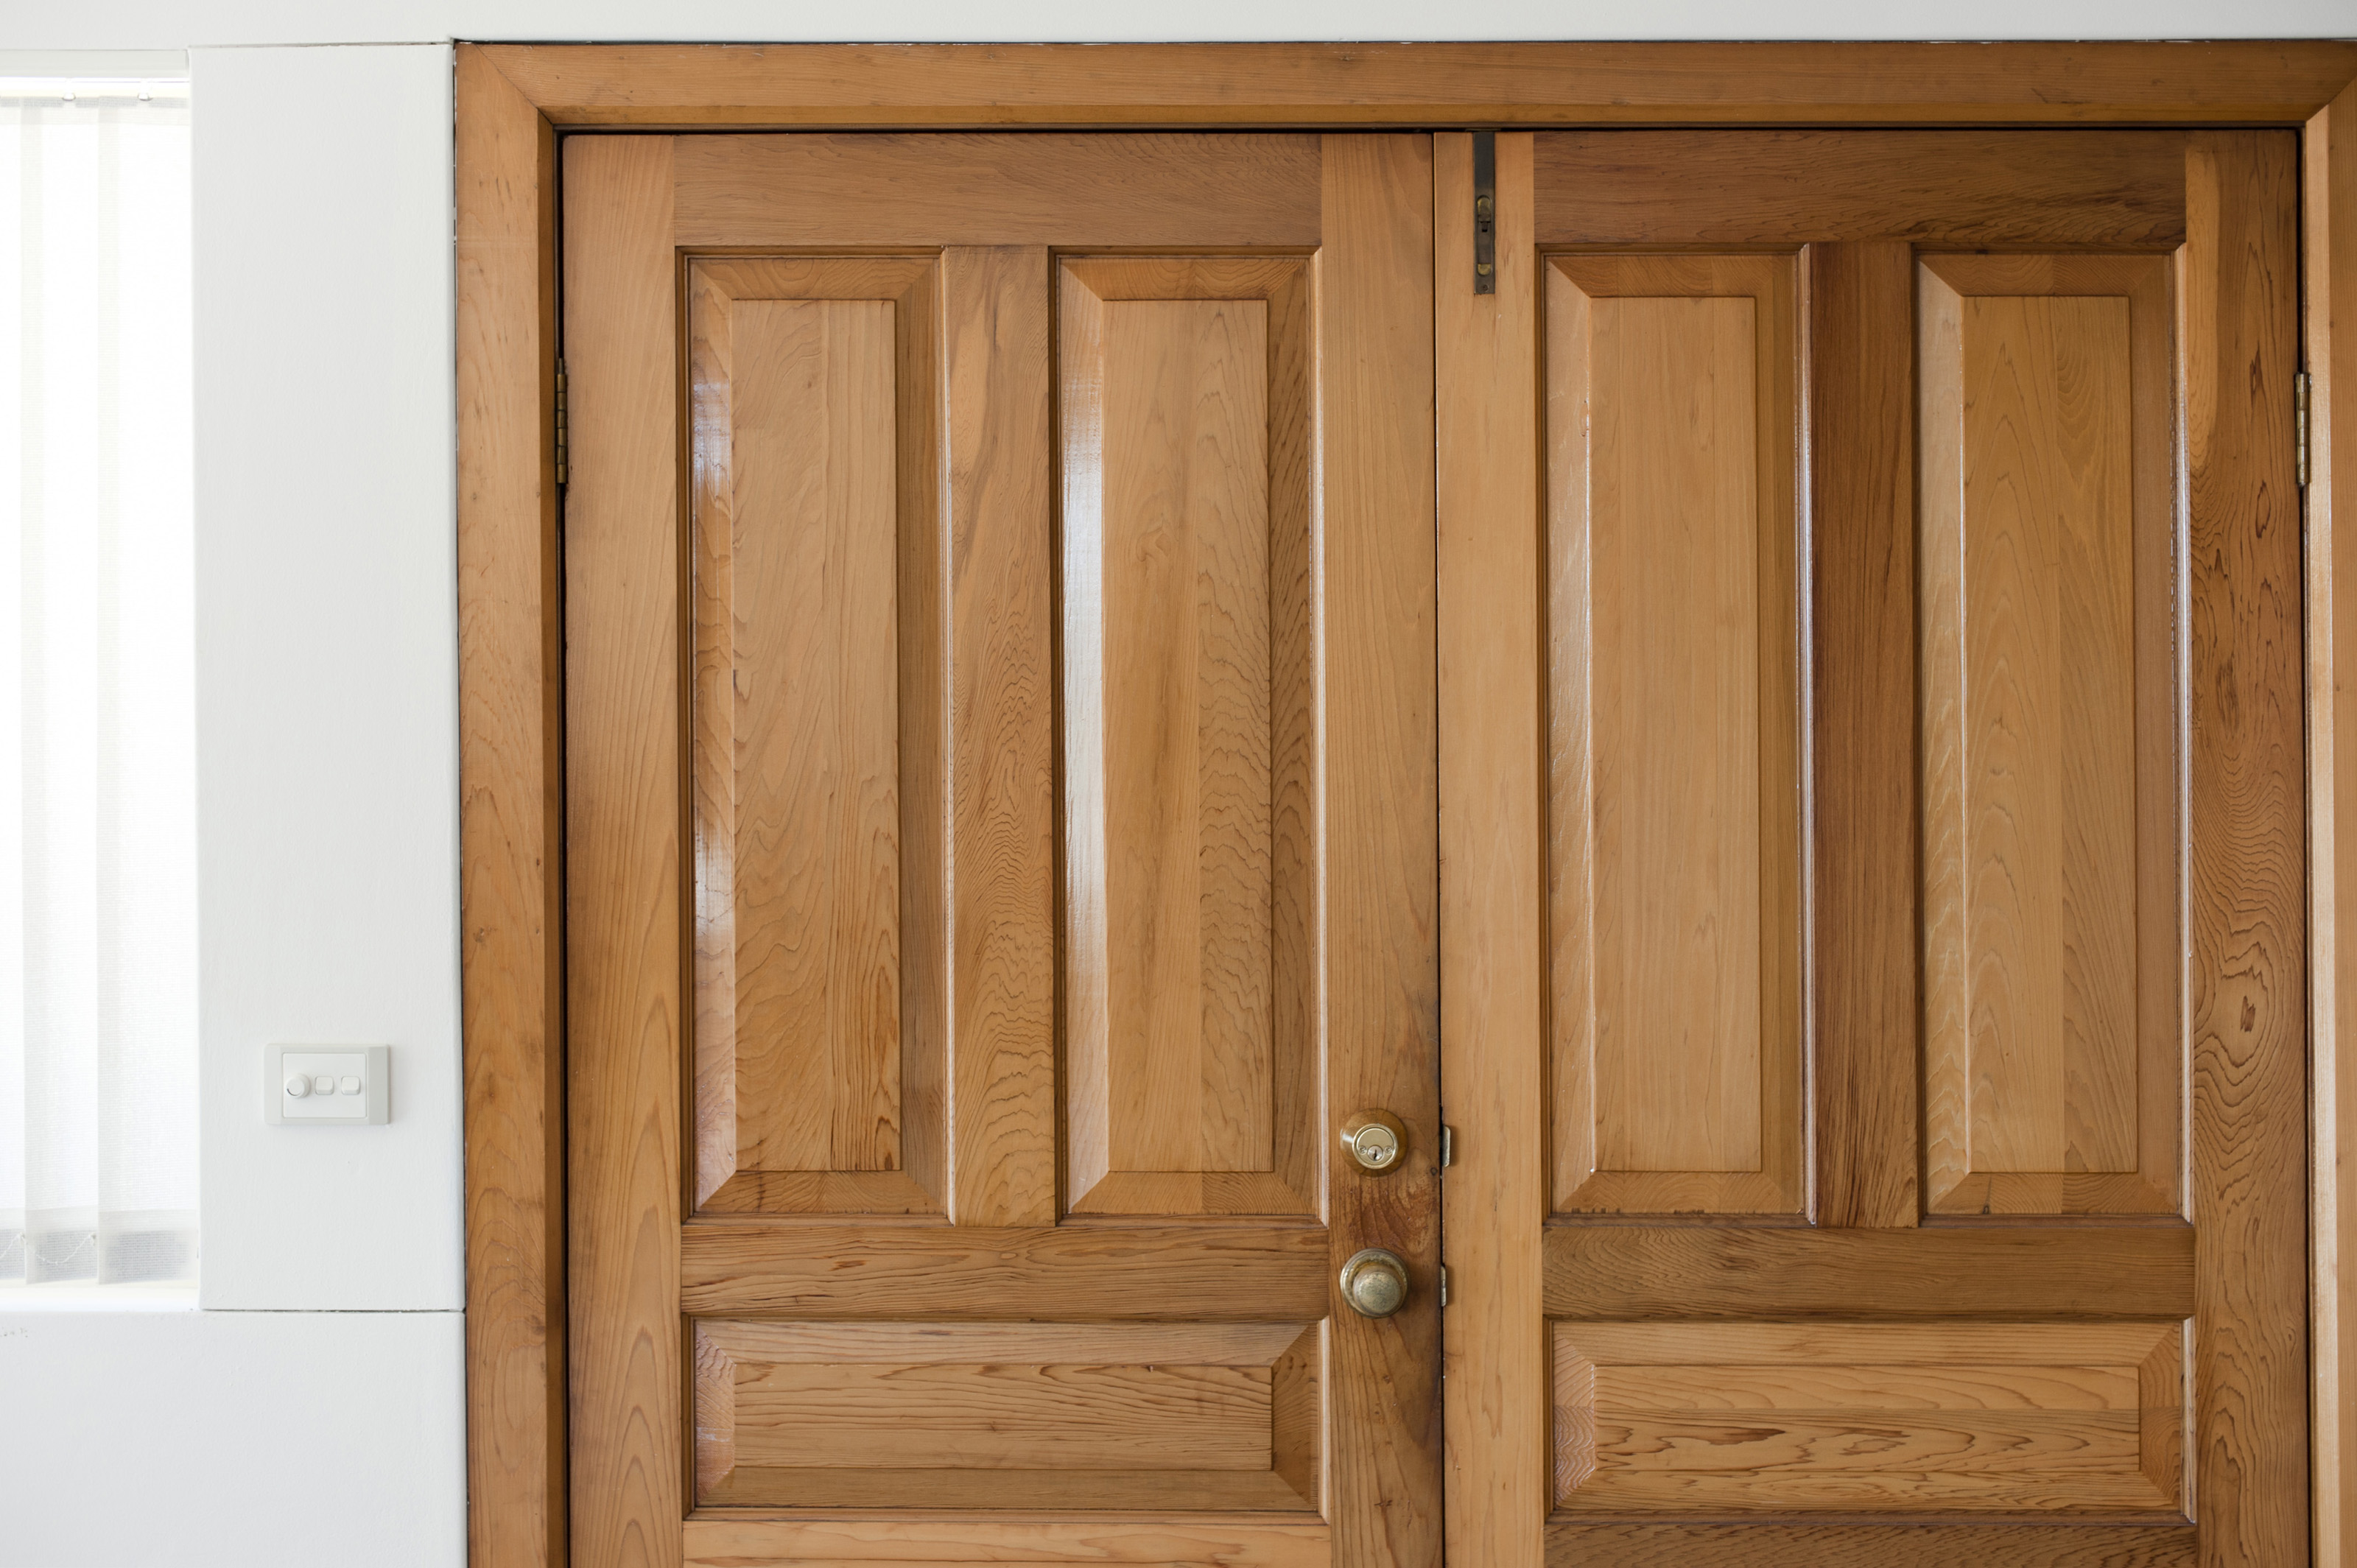 Free stock photo 10660 close up of a wooden front double for Entrance double door designs for houses